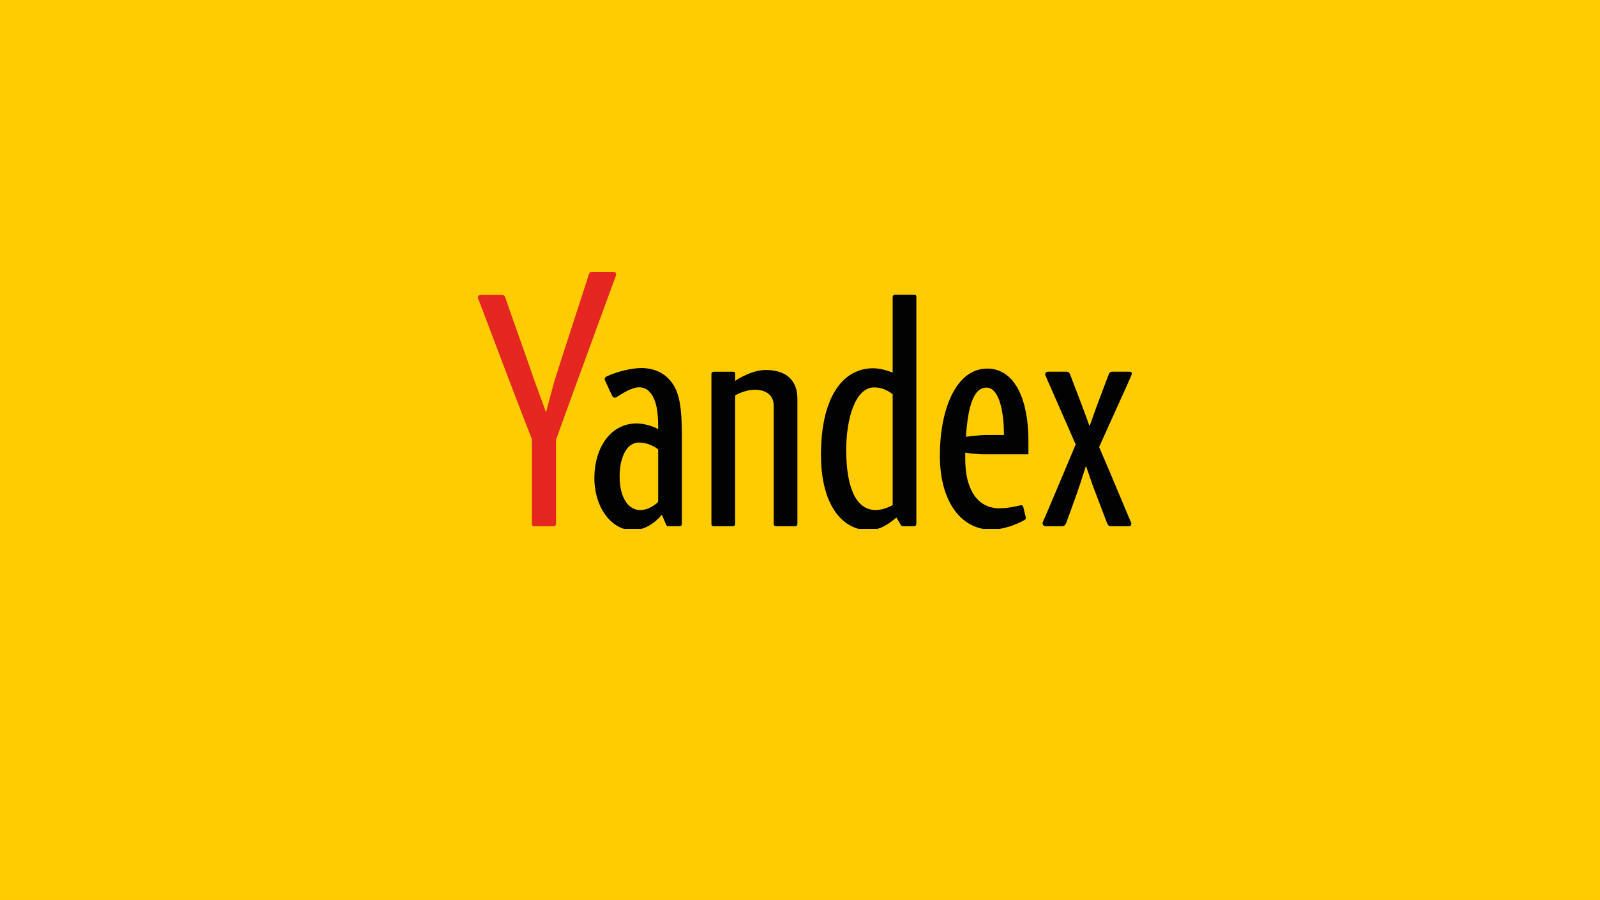 What is Yandex?